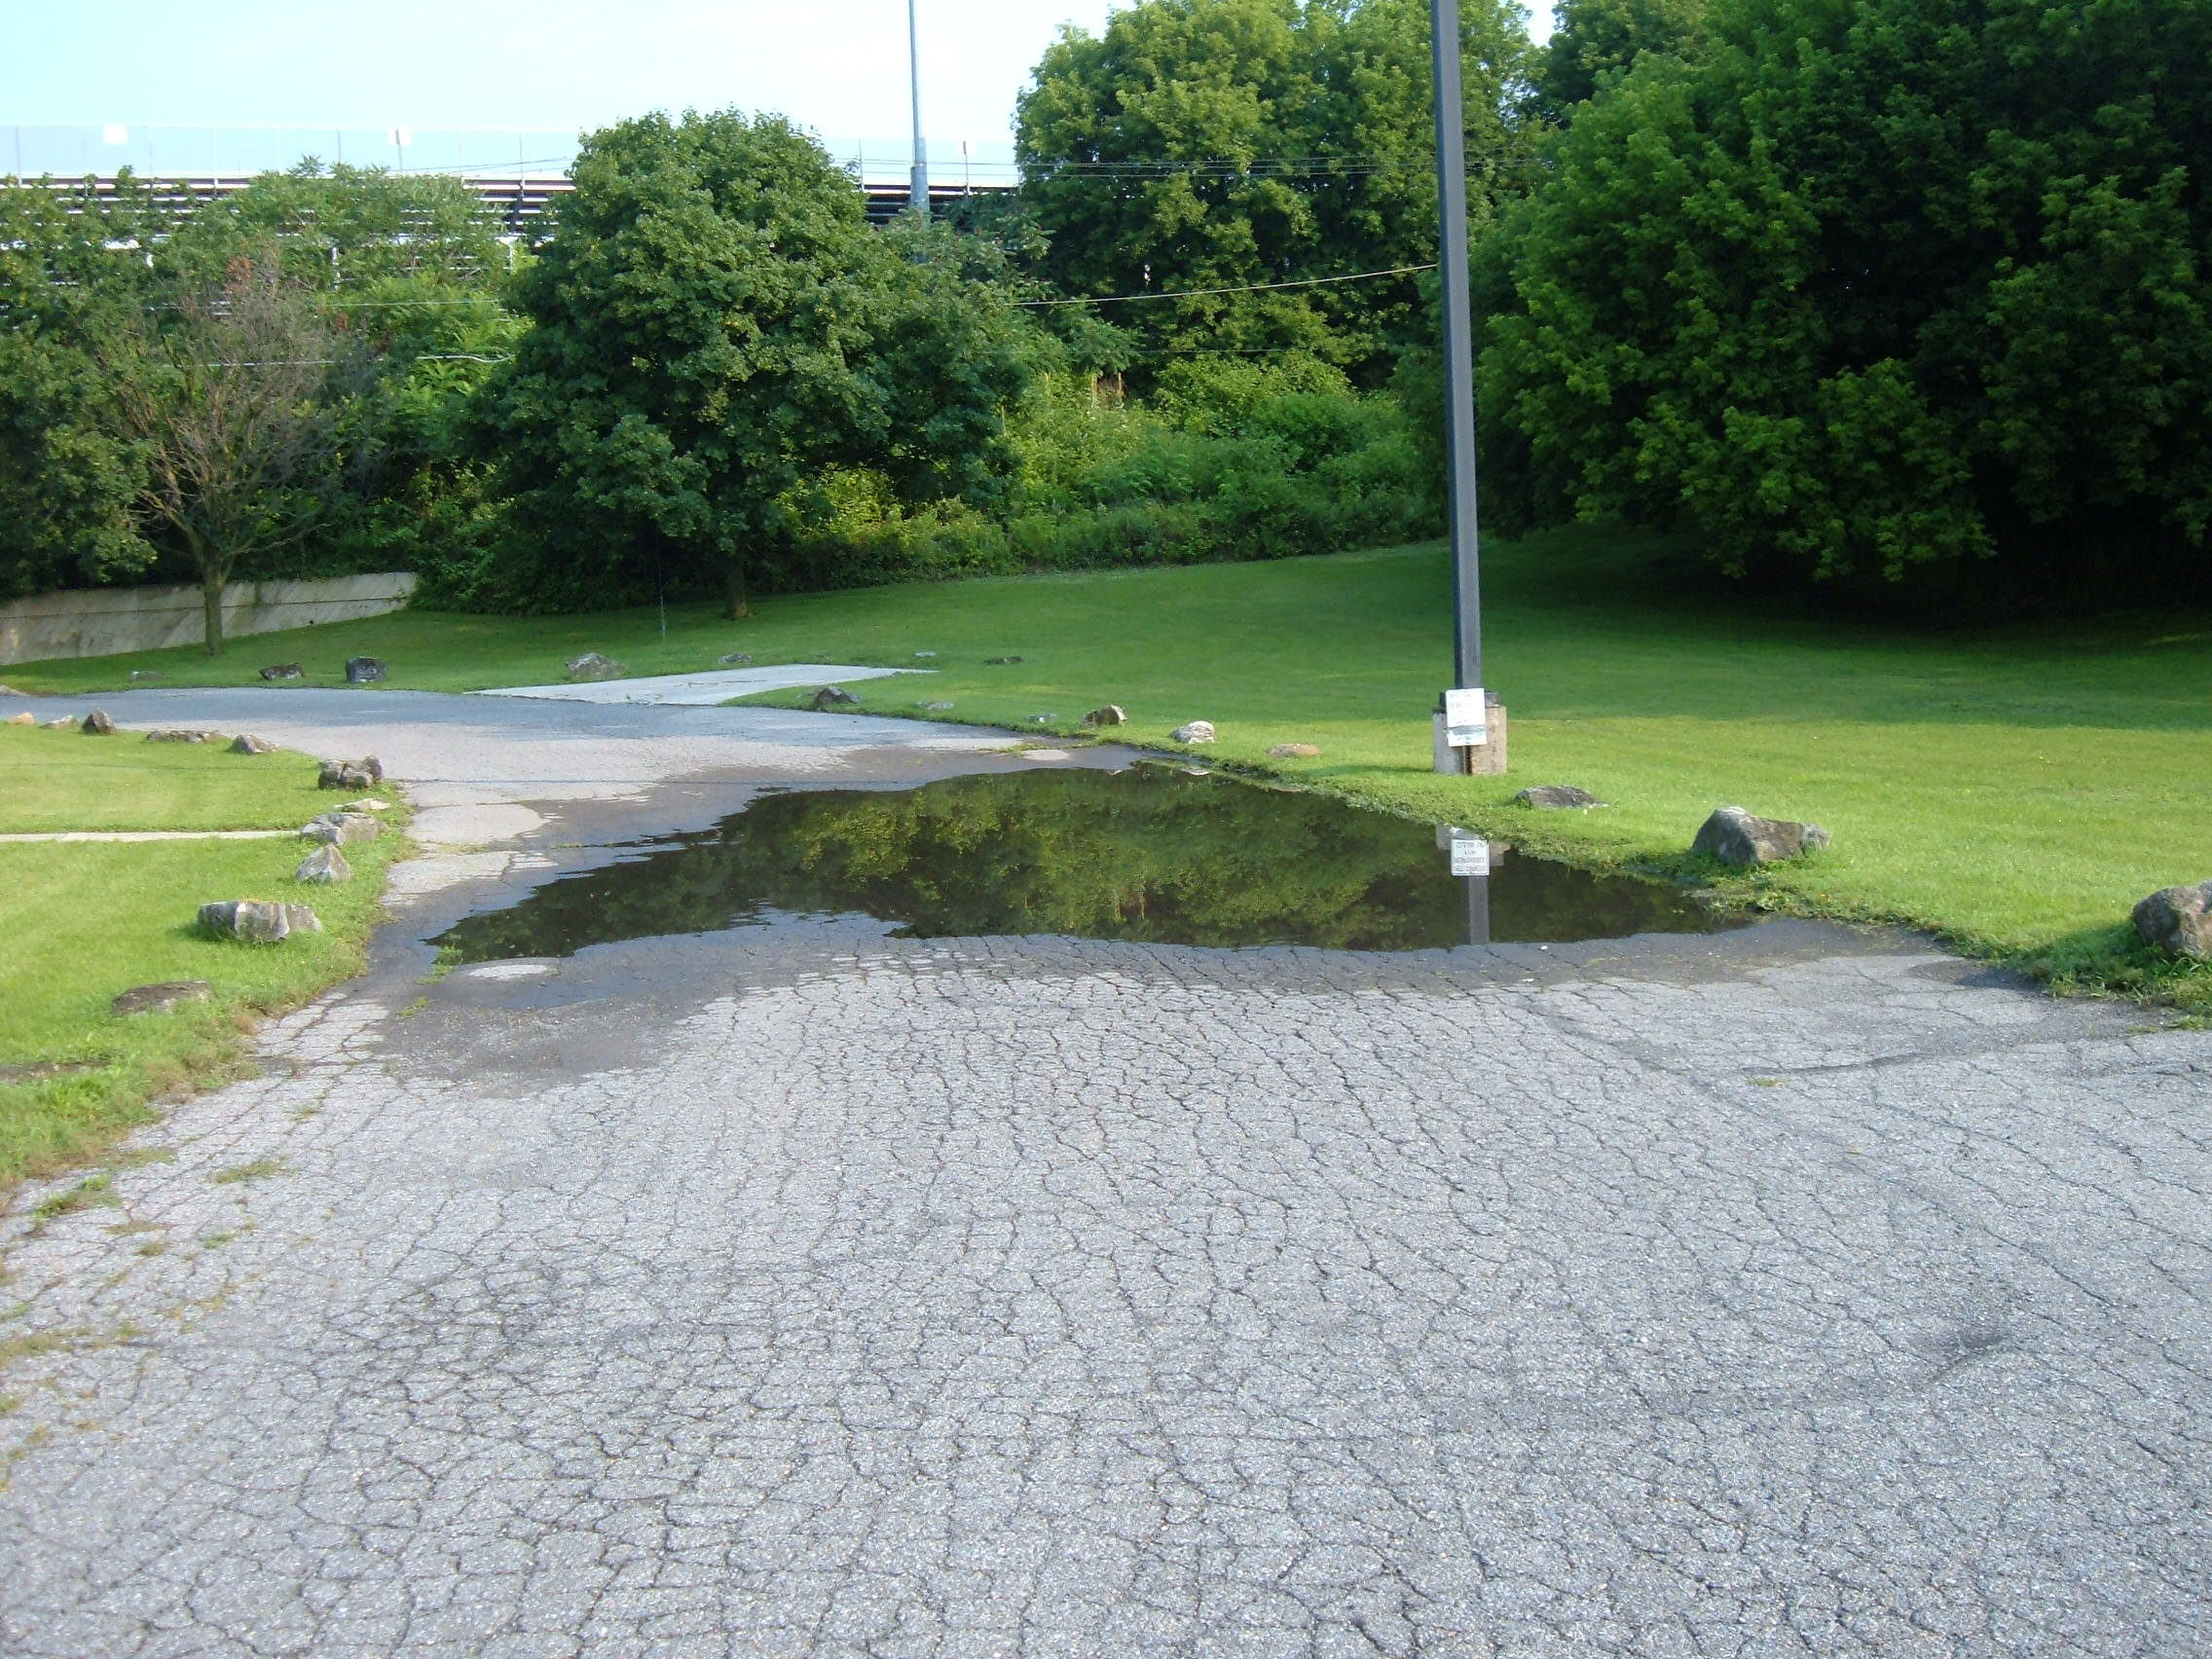 Uneven driveway with large water puddle and cracked pavement